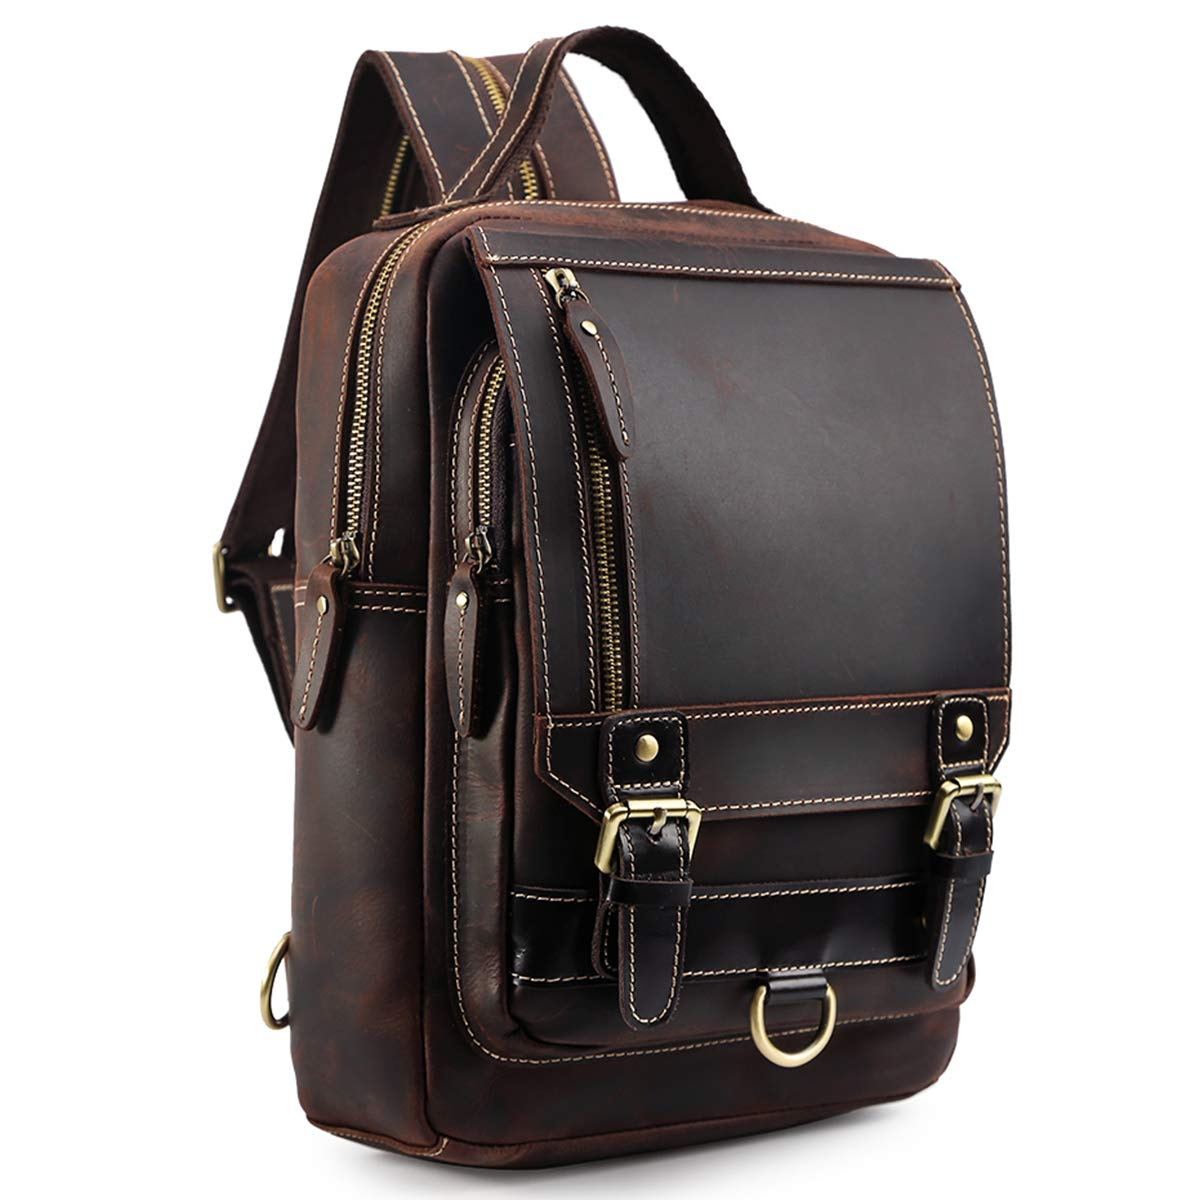 Tiding Men's Vintage Cowhide Small Leather Backpack Convertible Sling Purse School Bag Casual Daypack